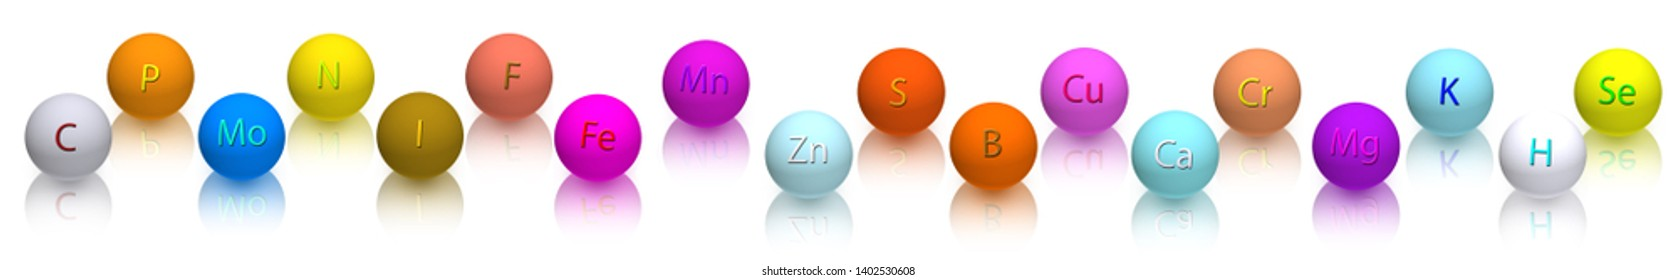 stylized image of vitamins and elements close-up